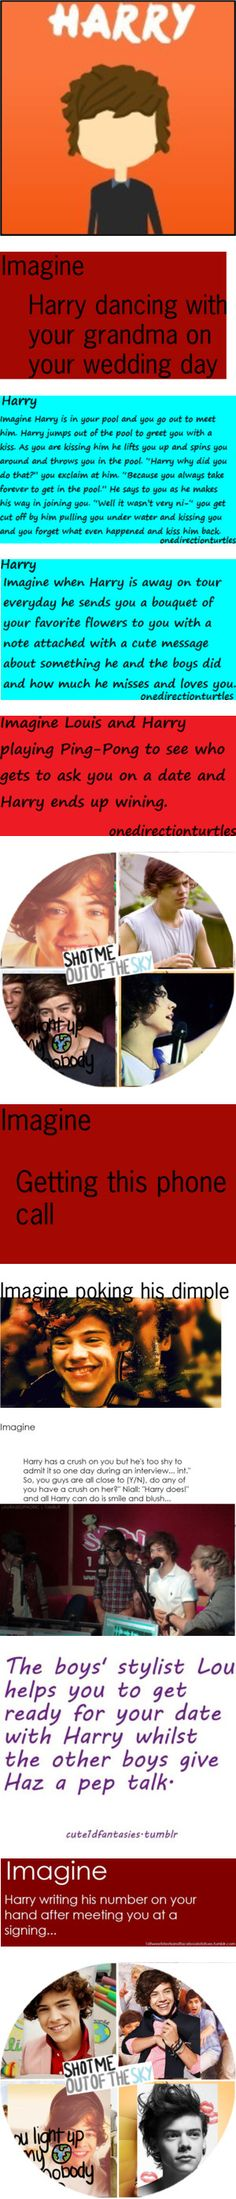 2023 Best ❤One Direction❤ images | Harry edward styles